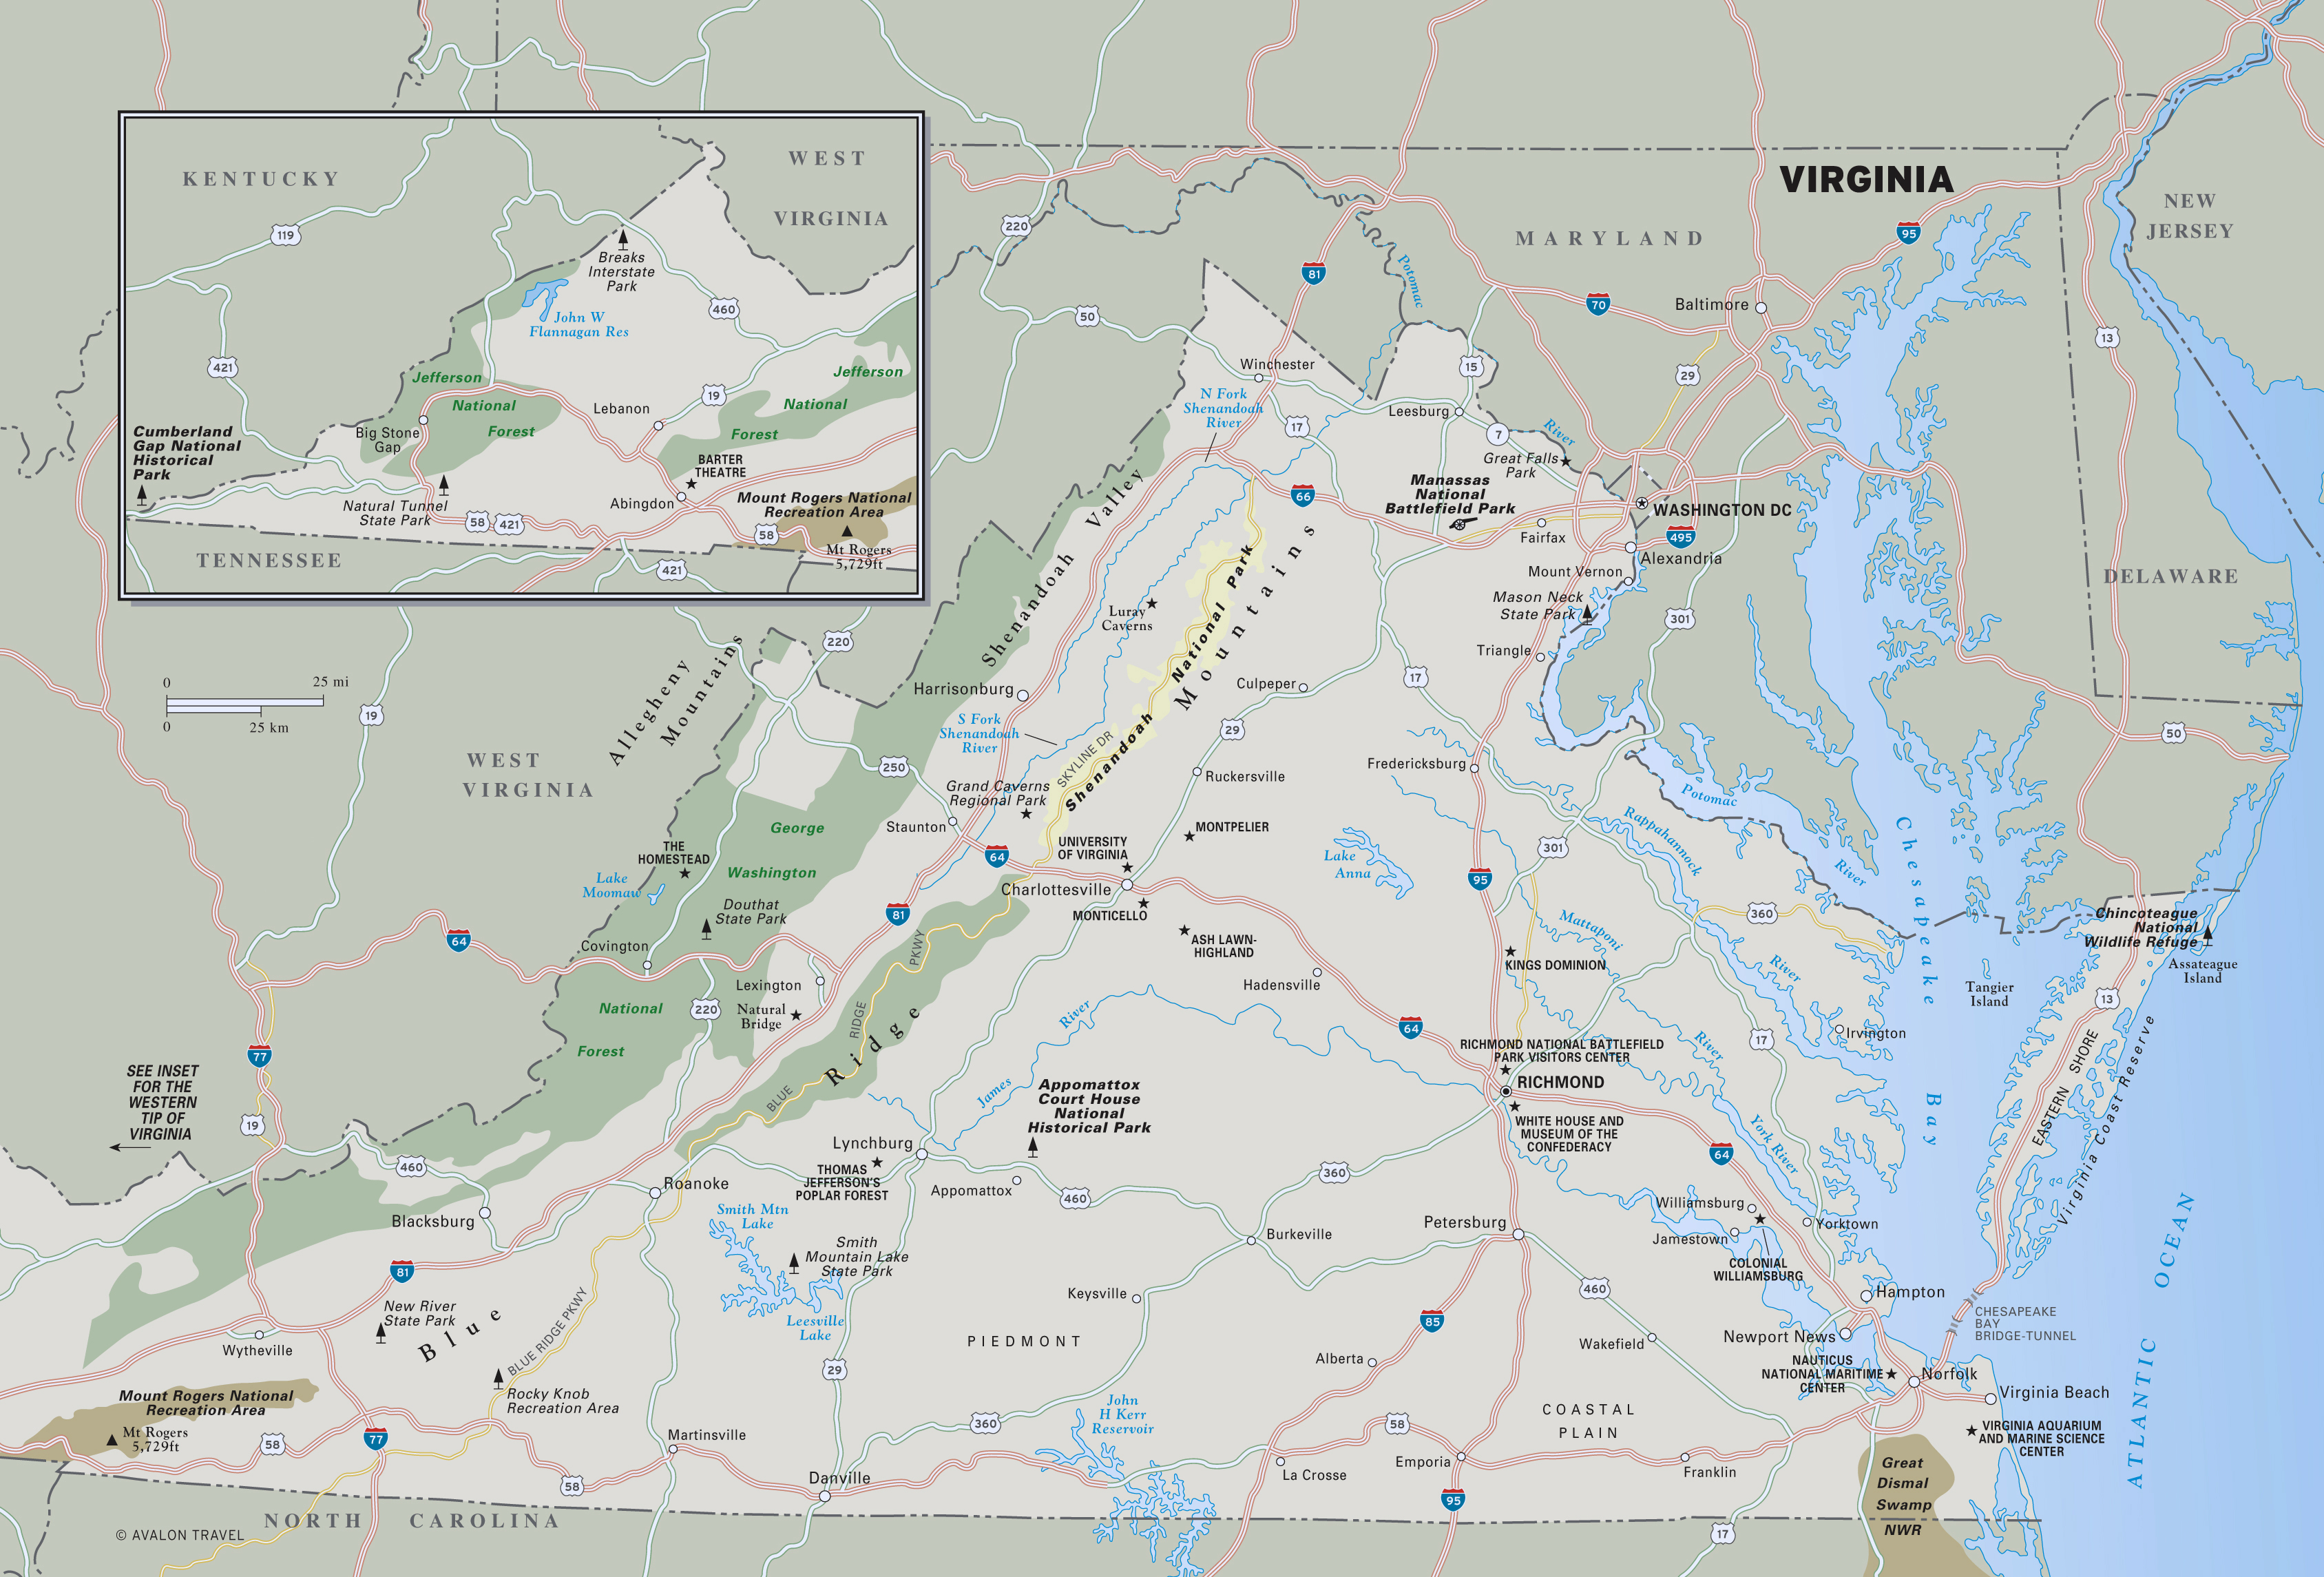 Map Of Virginia State Parks Large detailed map of Virginia state with national parks, highways